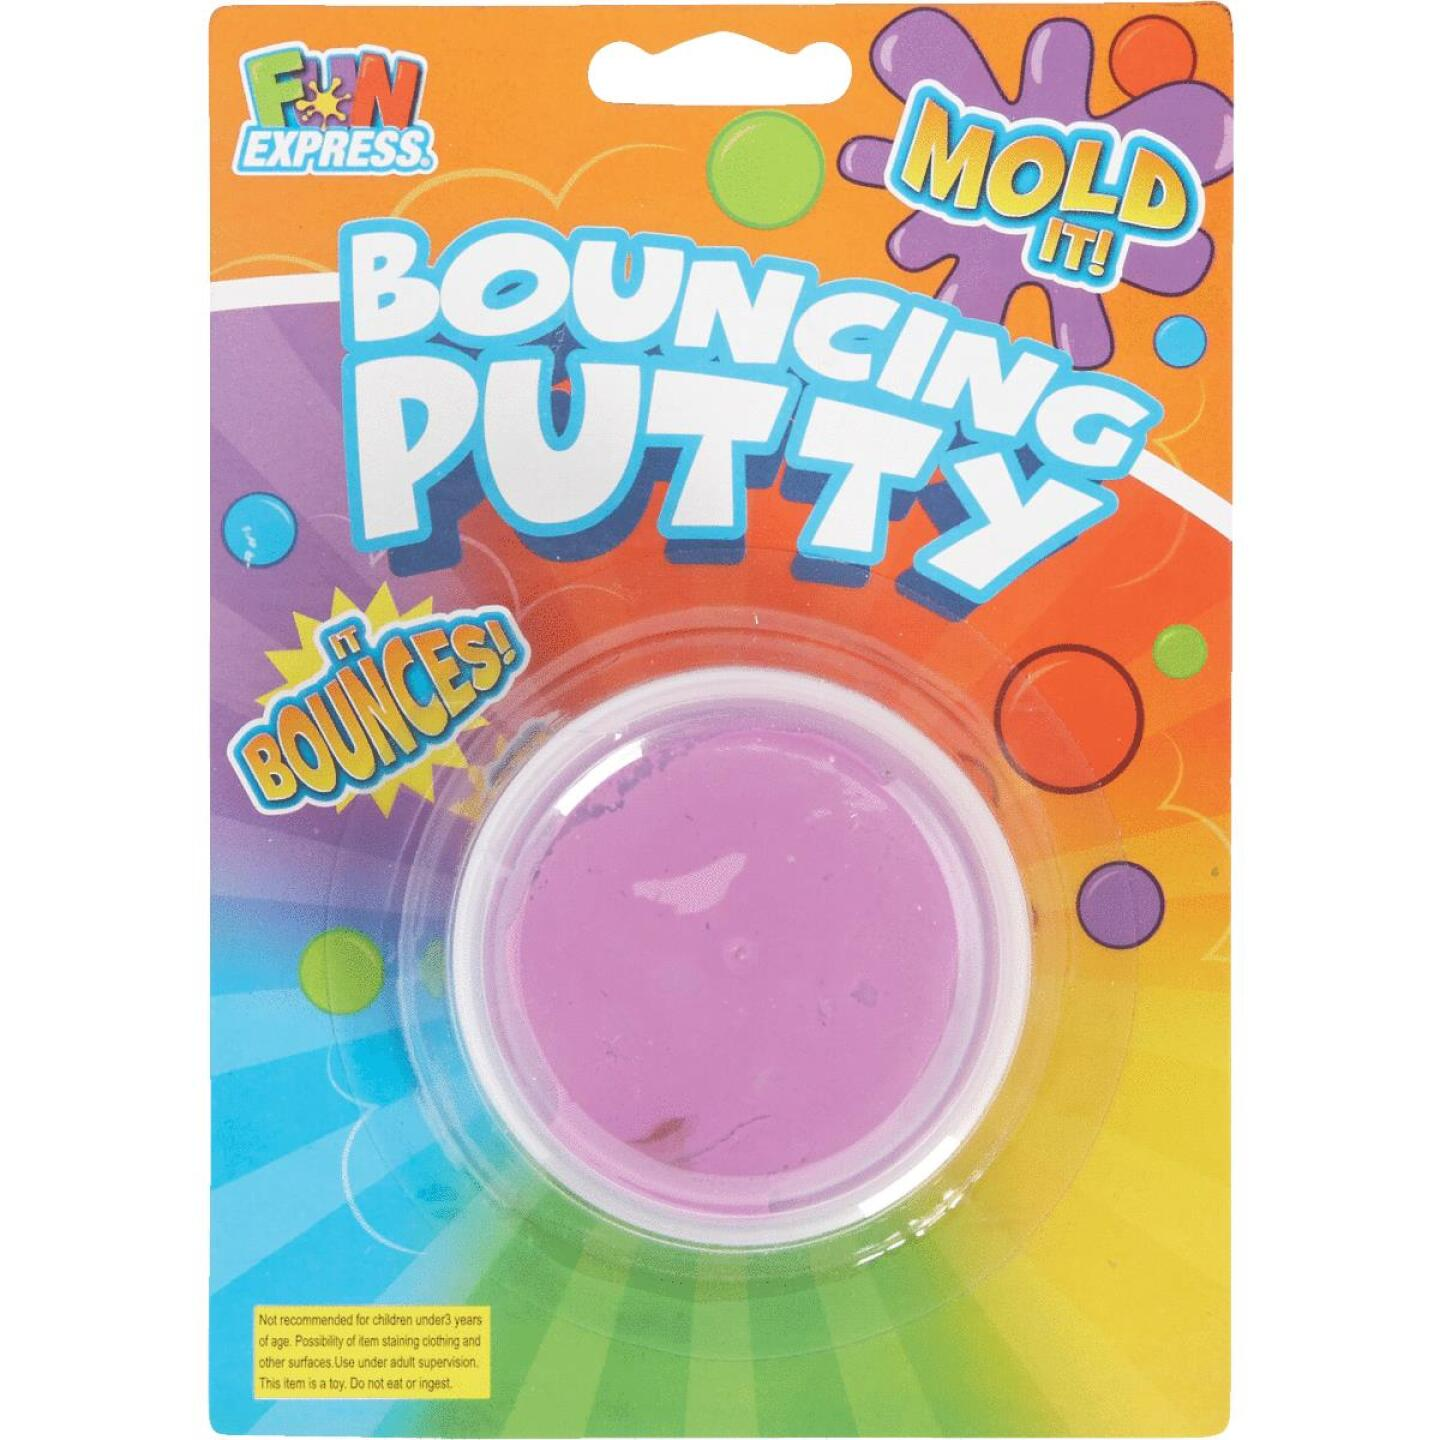 Fun Express Assorted Color Bouncing Putty Image 2